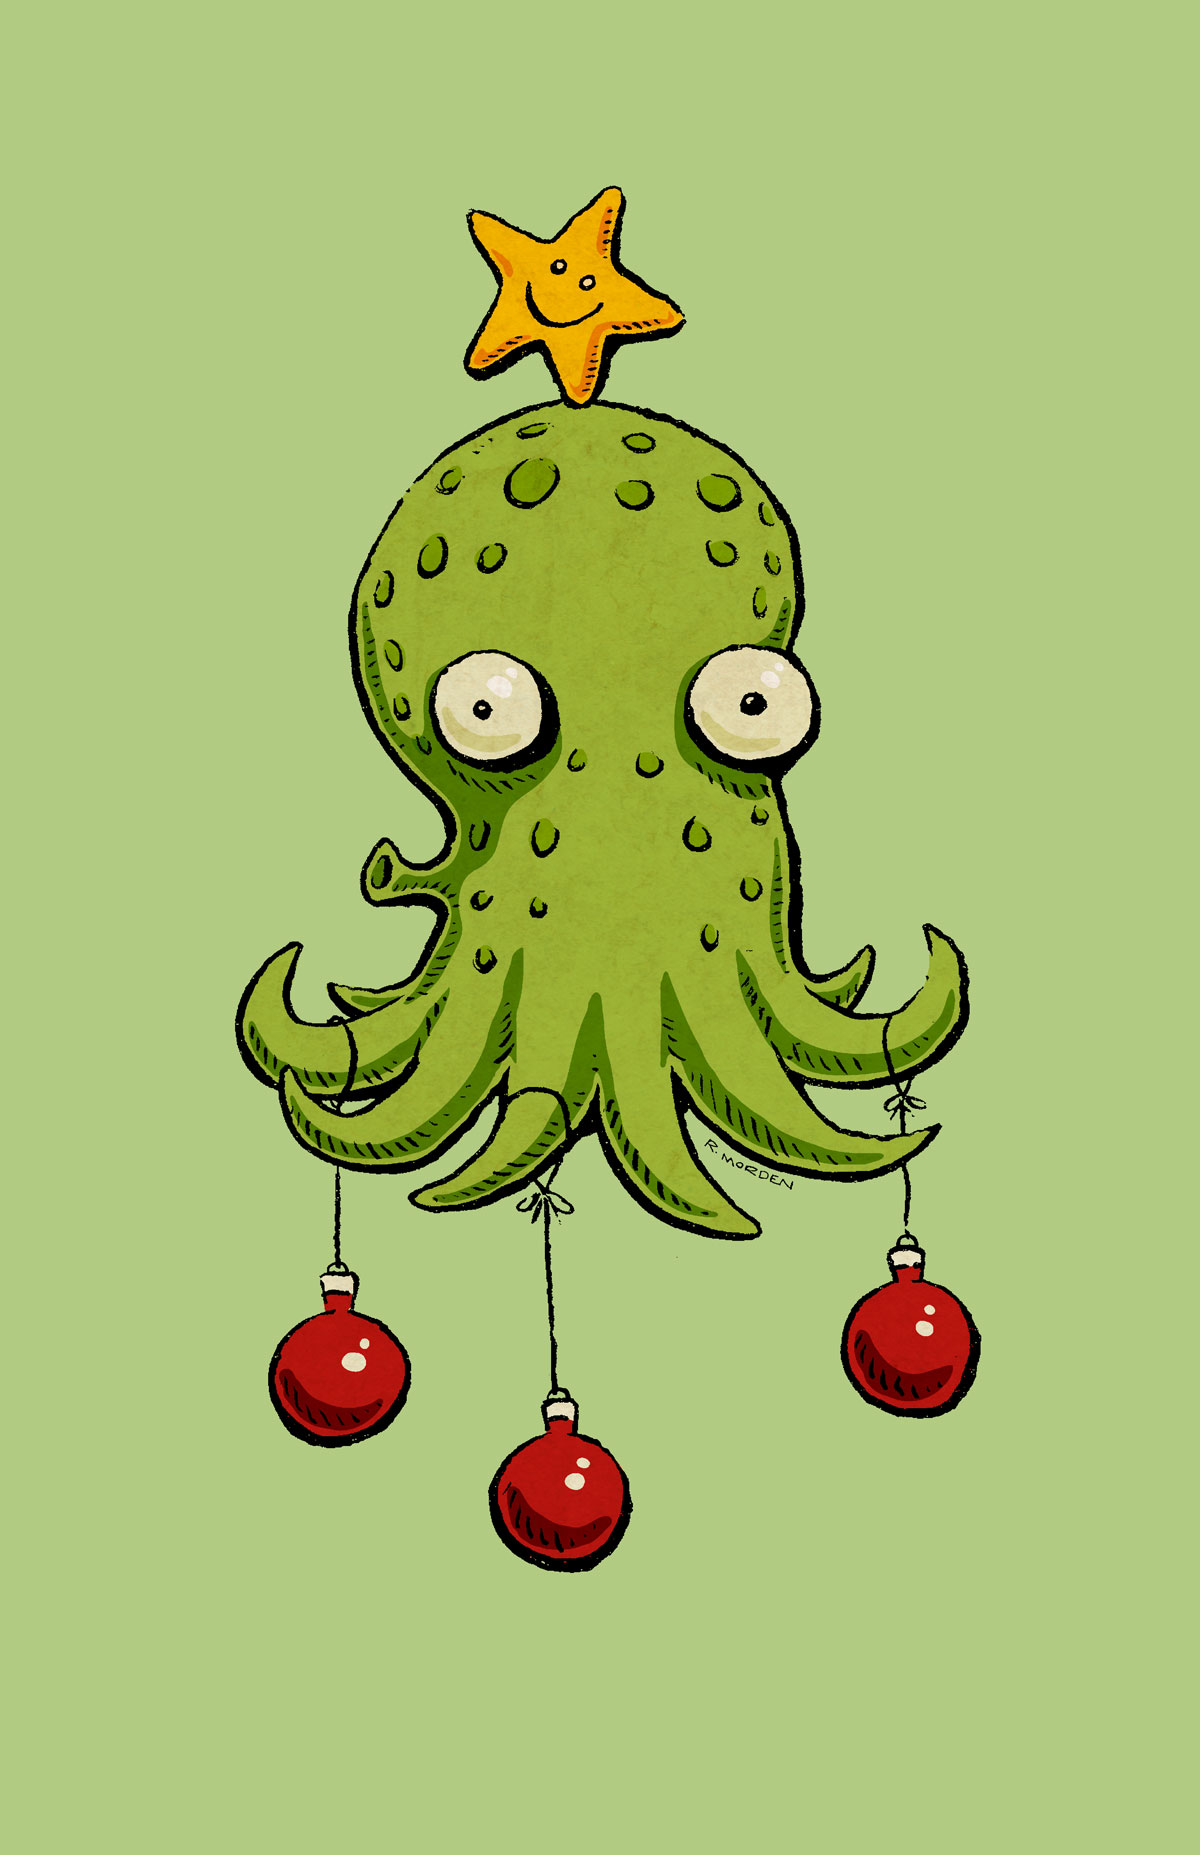 octopus with star and ornaments like christmas tree